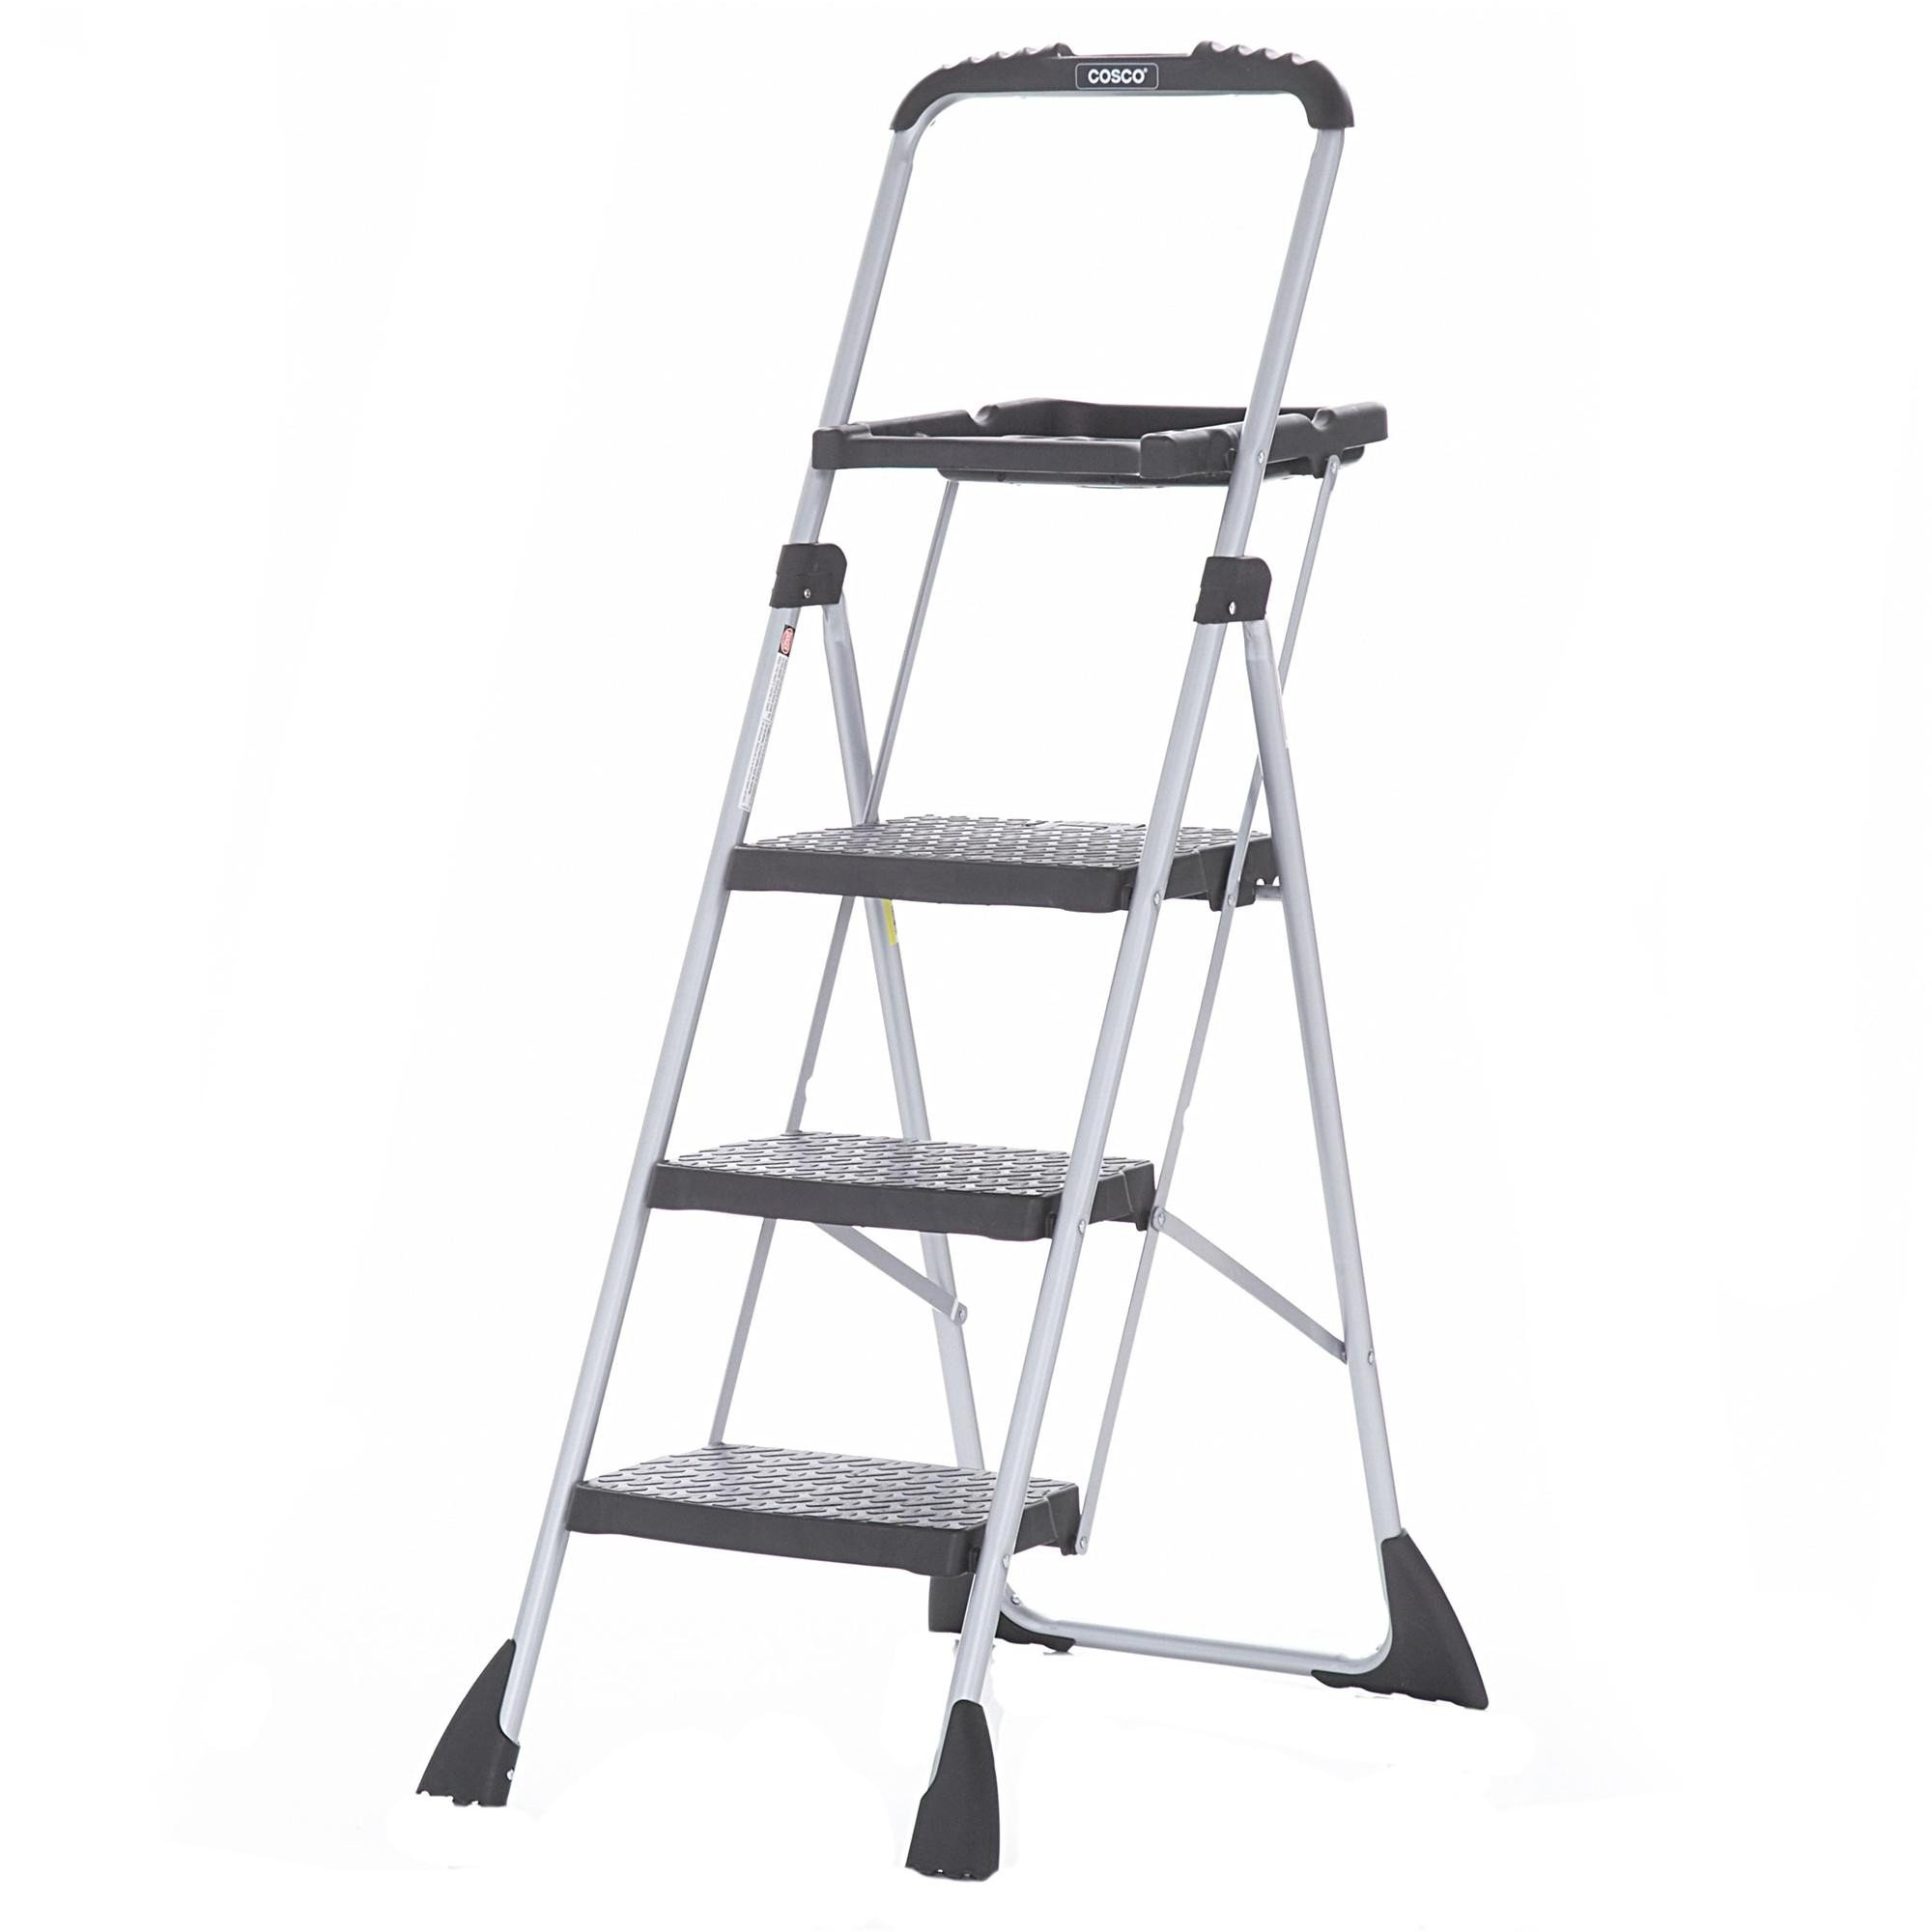 New Cosco Three Step Ladder Max Steel Work Platform Ebay